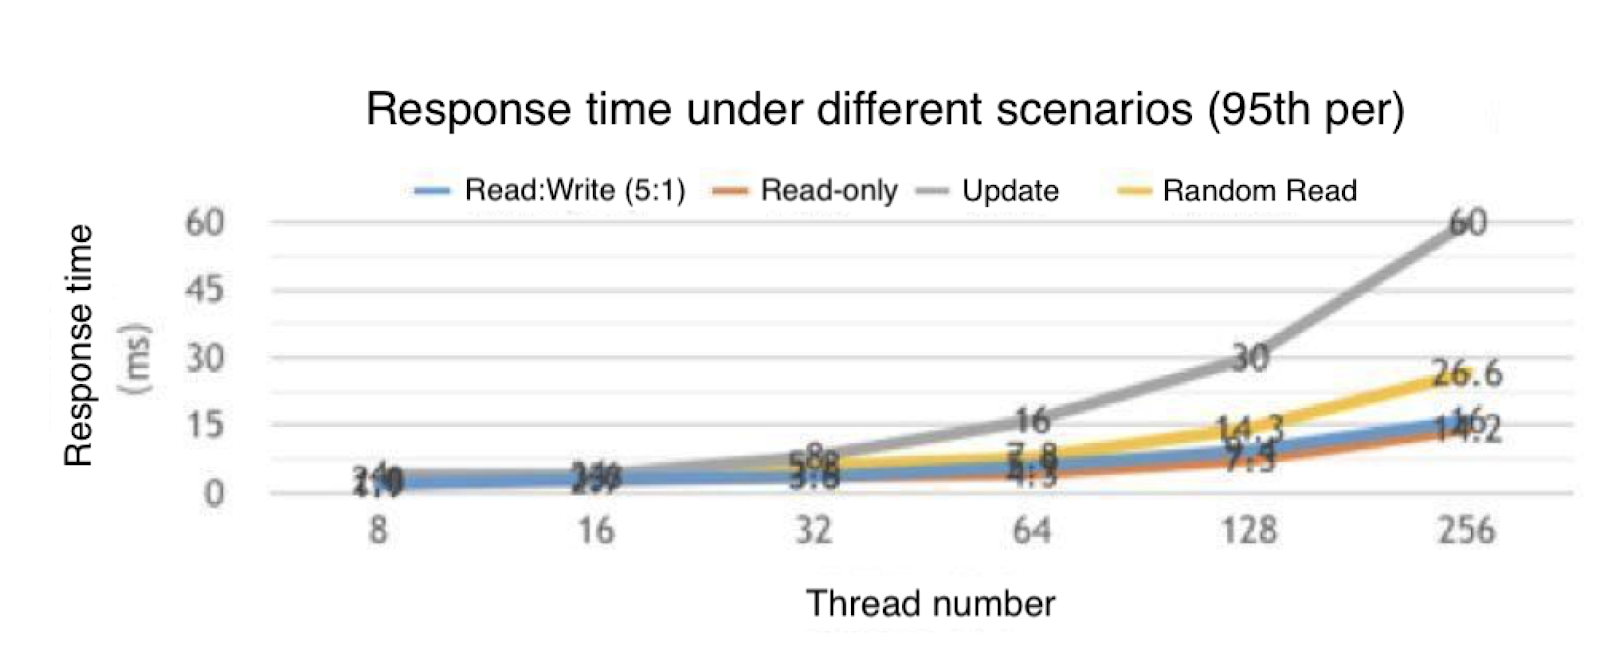 Response time under different scenarios